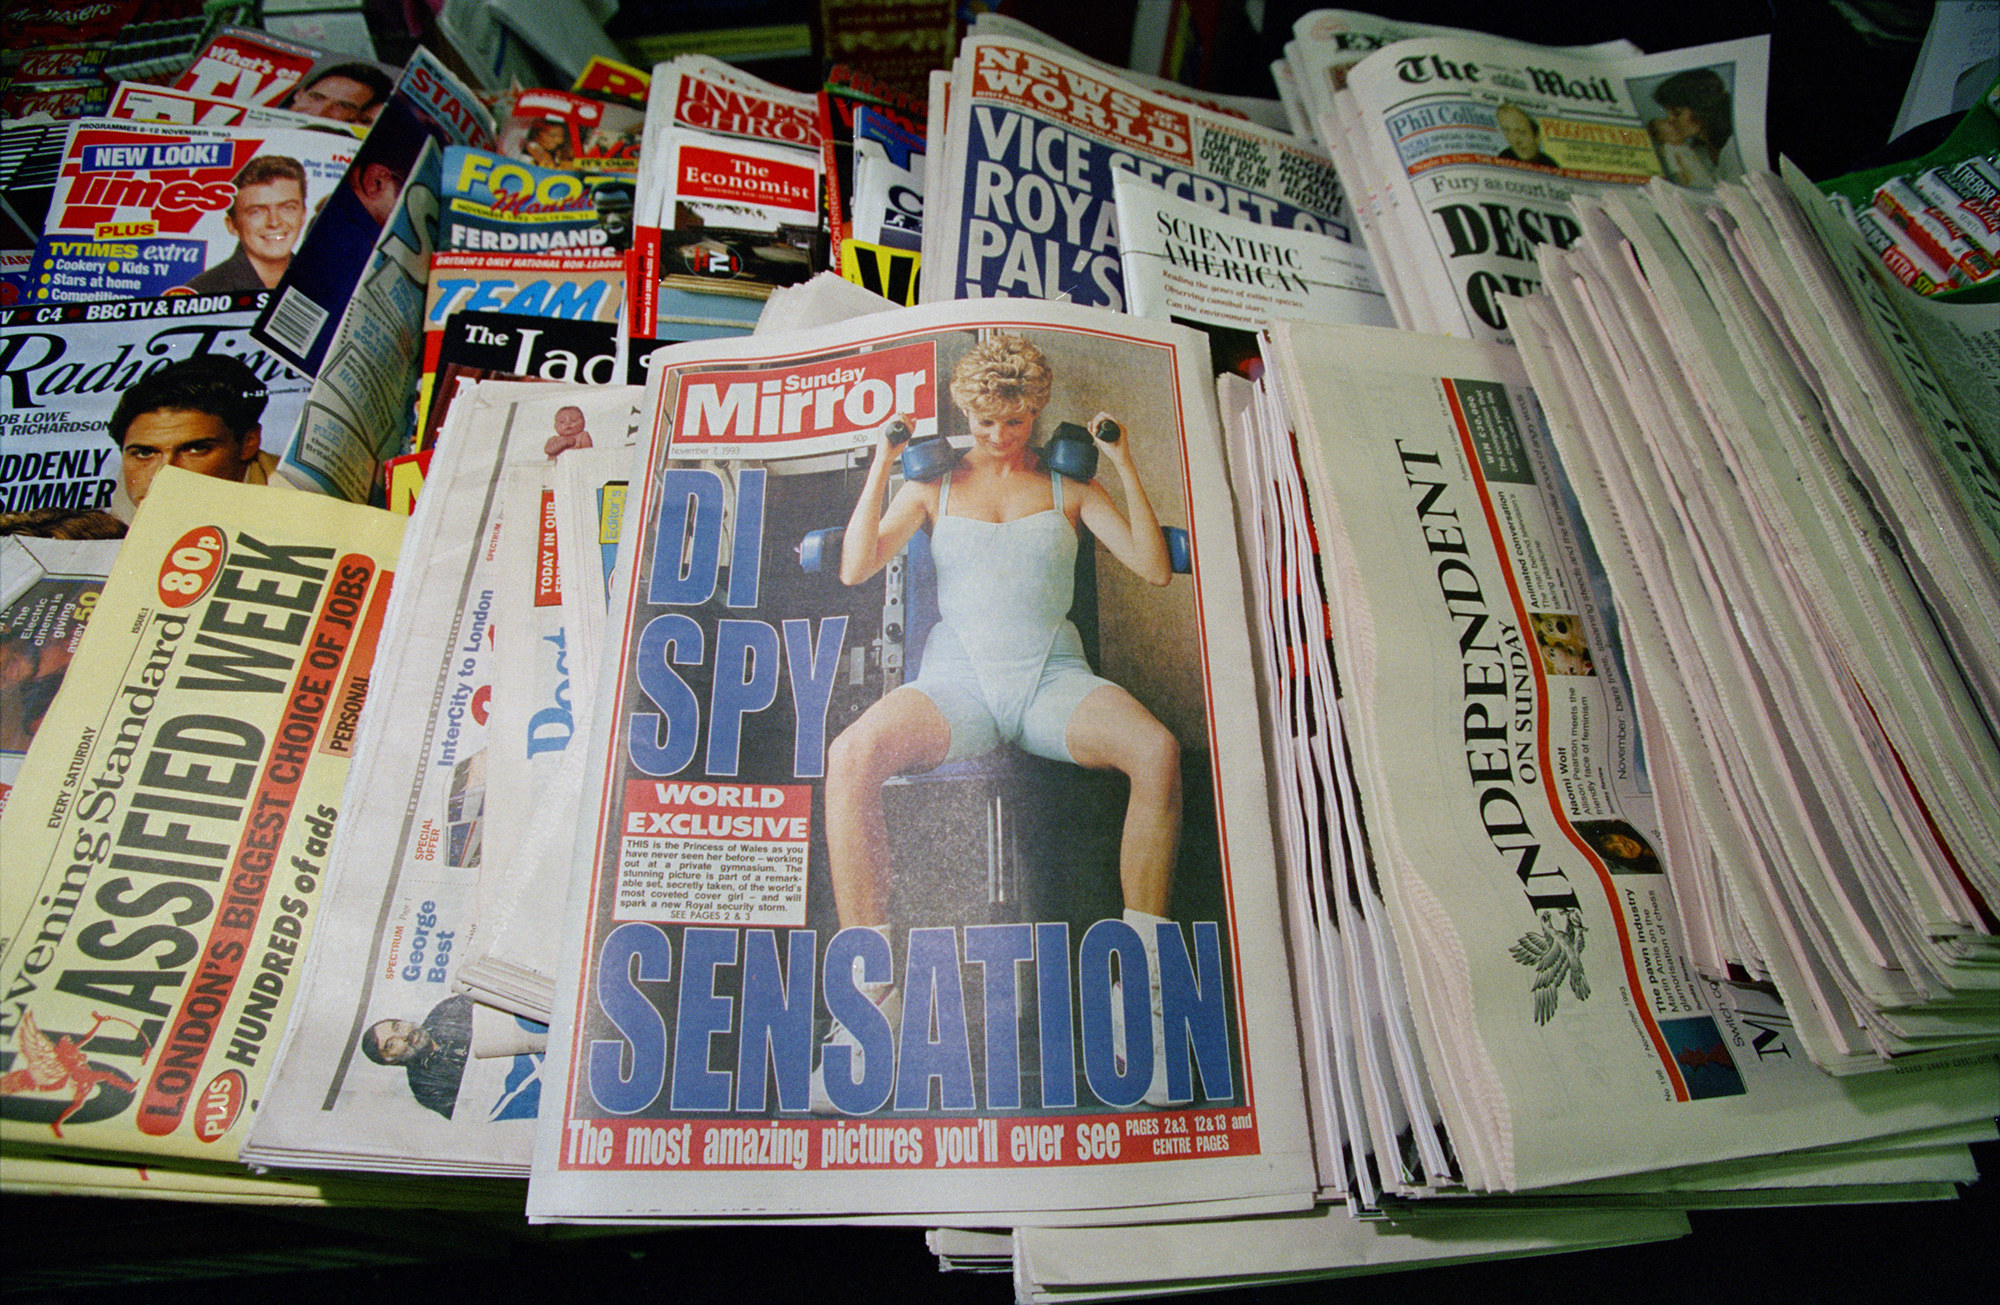 At the center is a copy of the Sunday Mirror, featuring a controversial, secretly taken picture of Diana, Princess of Wales